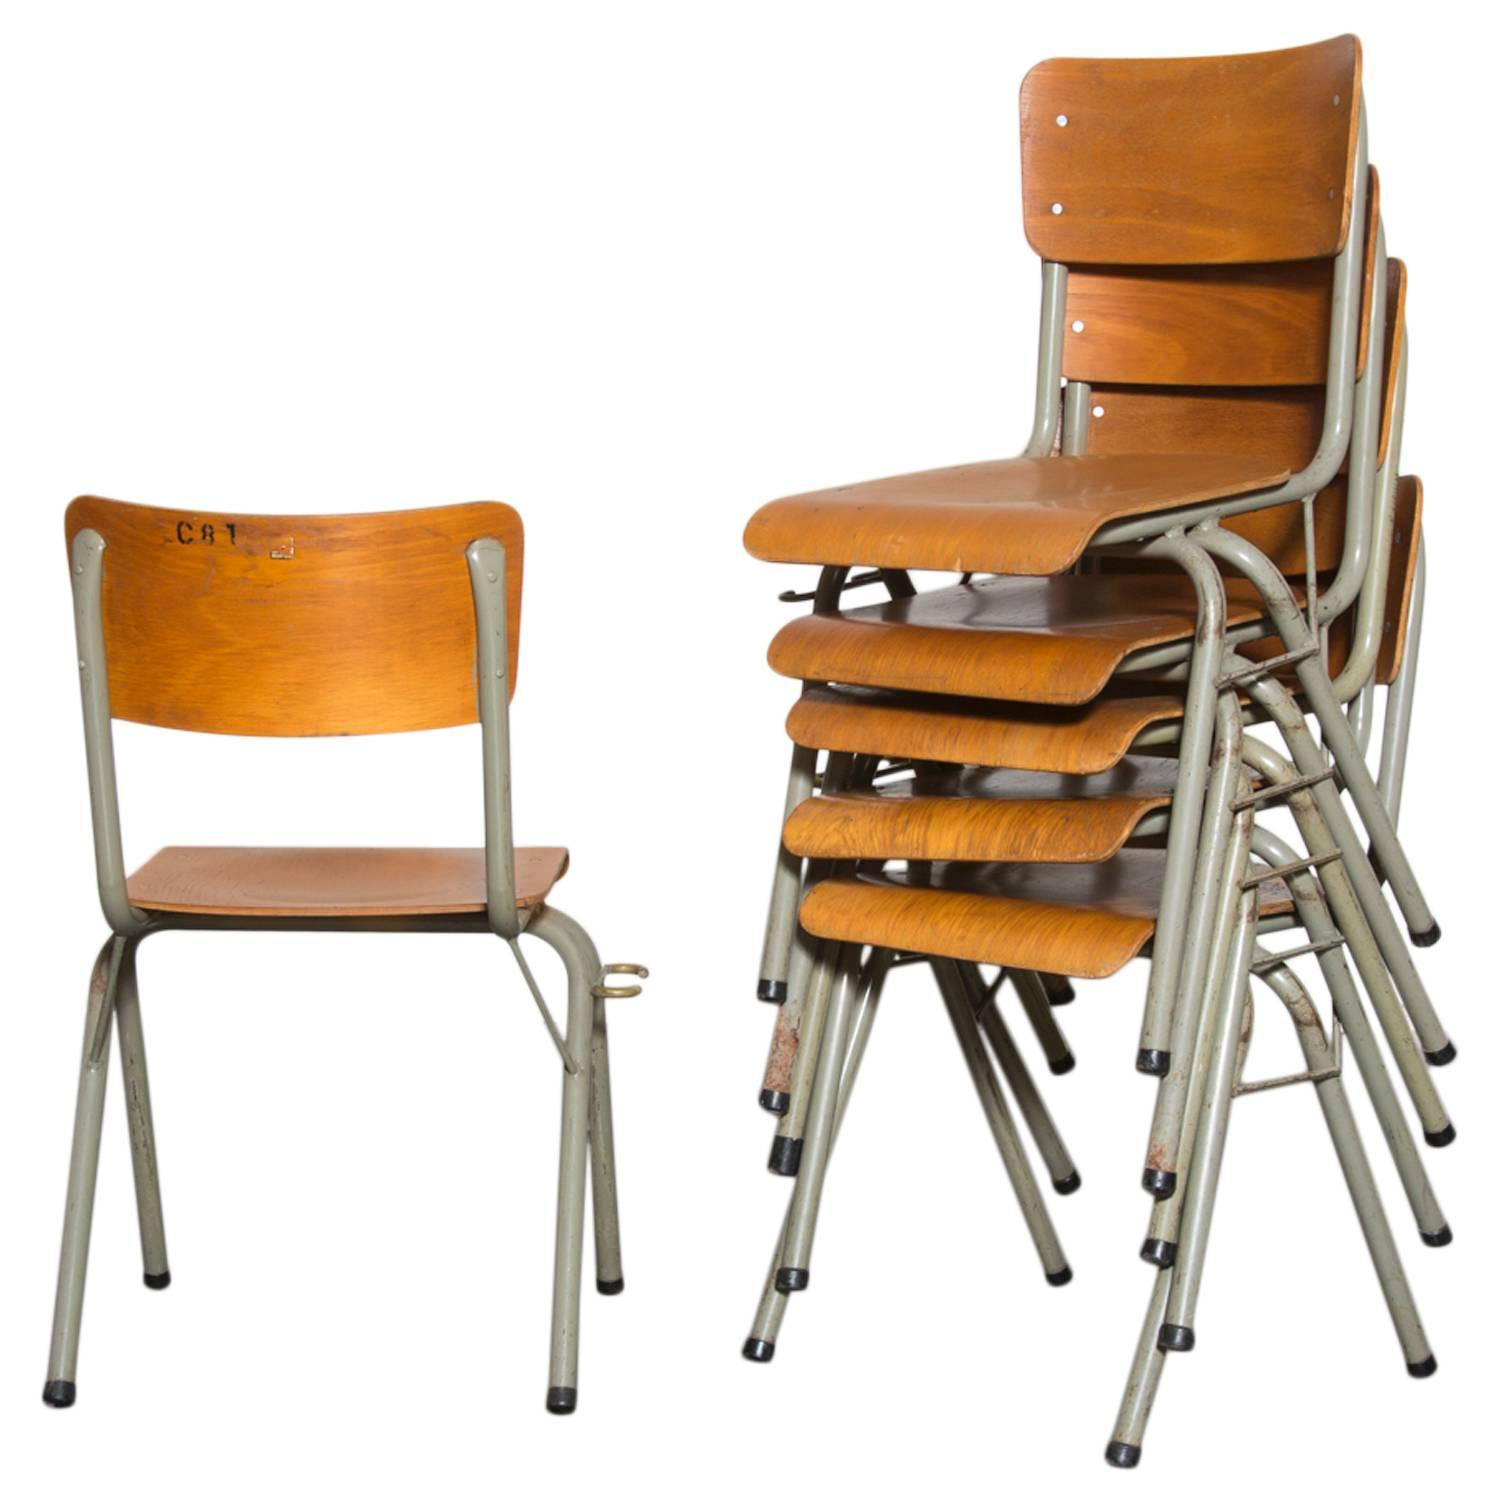 Tubax Birch Stacking School Chairs with Side Hooks For Sale at 1stdibs